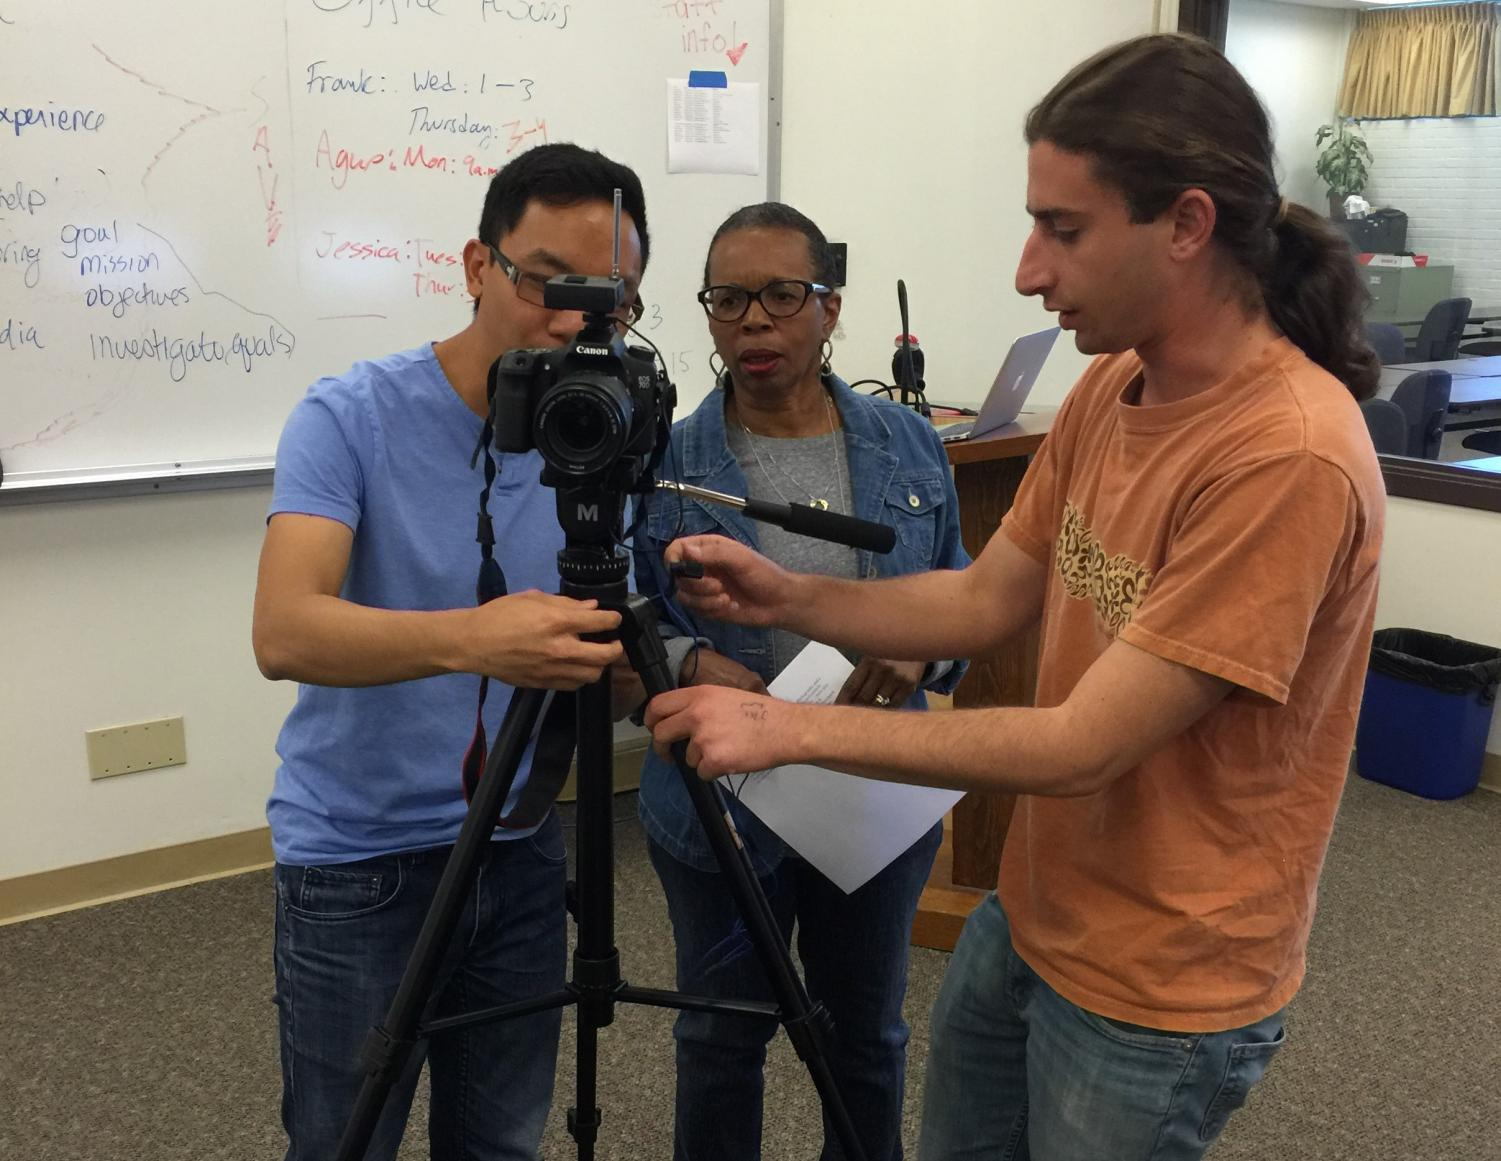 Nikolas Samuels (left) helps other students set up camera equipment. Photo provided by Joanna Miller.